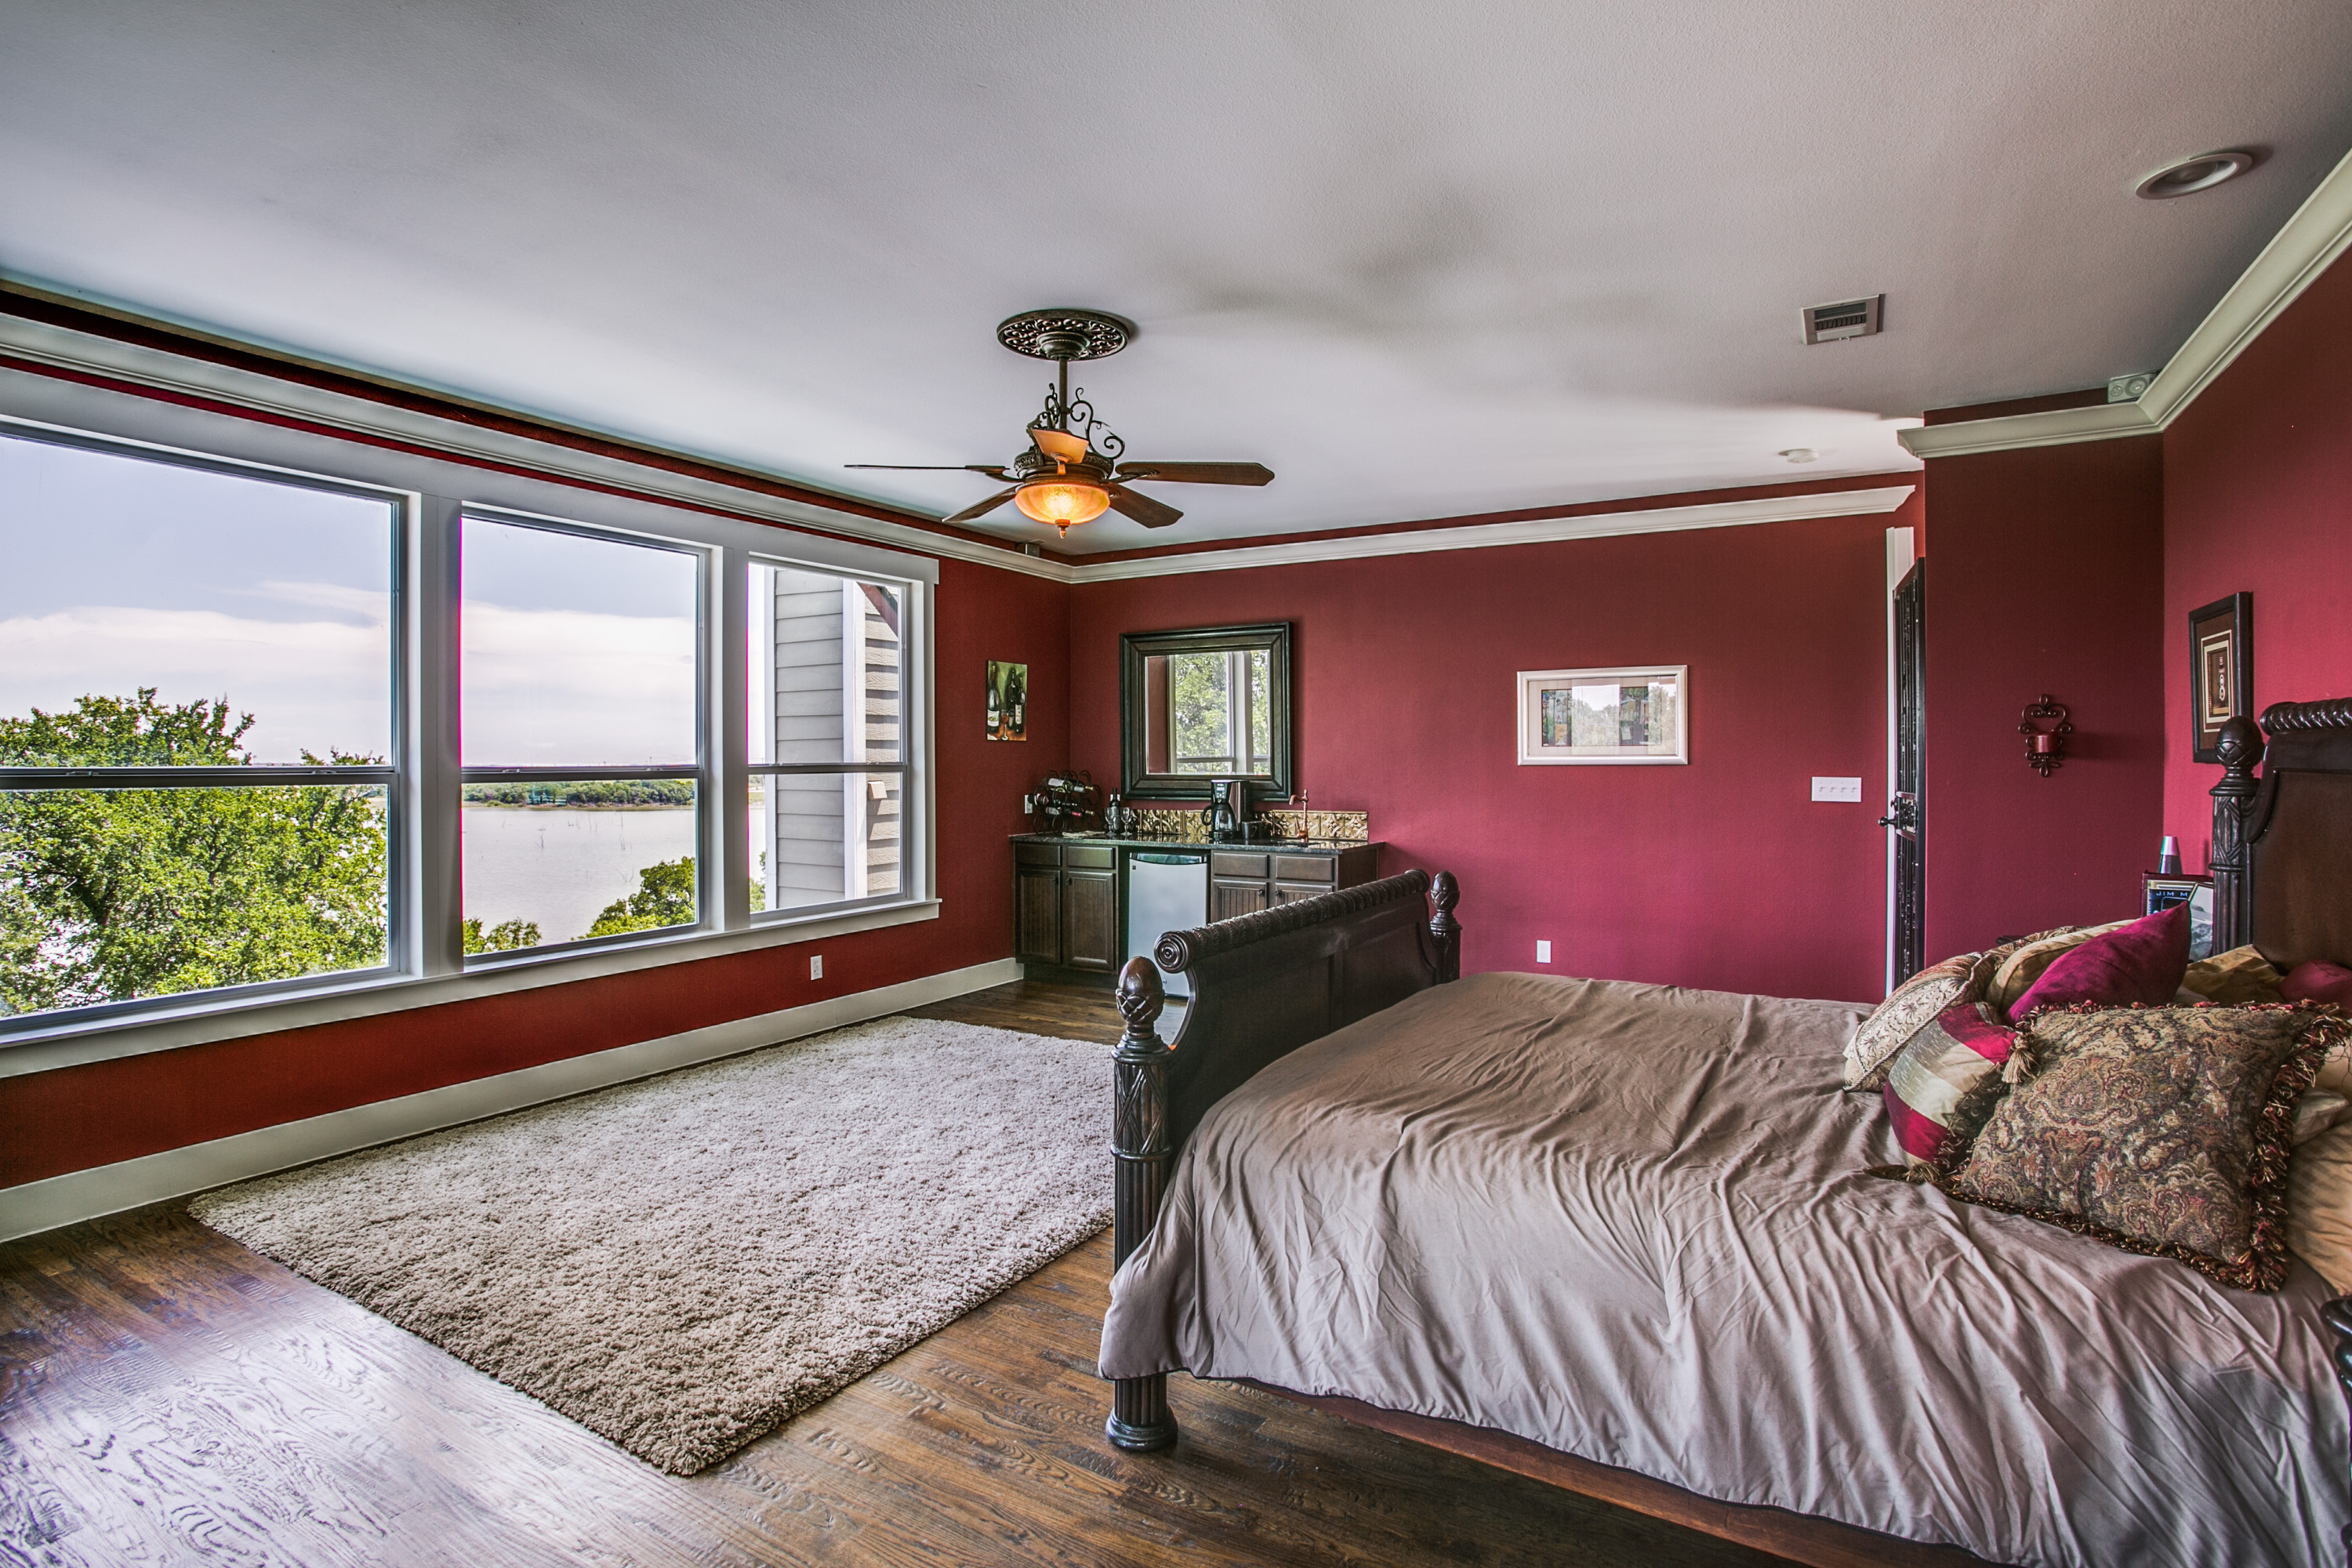 The entire 3rd floor houses the Master suite. You won't even have to leave your bedroom until you're ready to start your day. Grab coffee & breakfast from the custom coffee bar.  Wake up with the sunrise & what a view from this height!